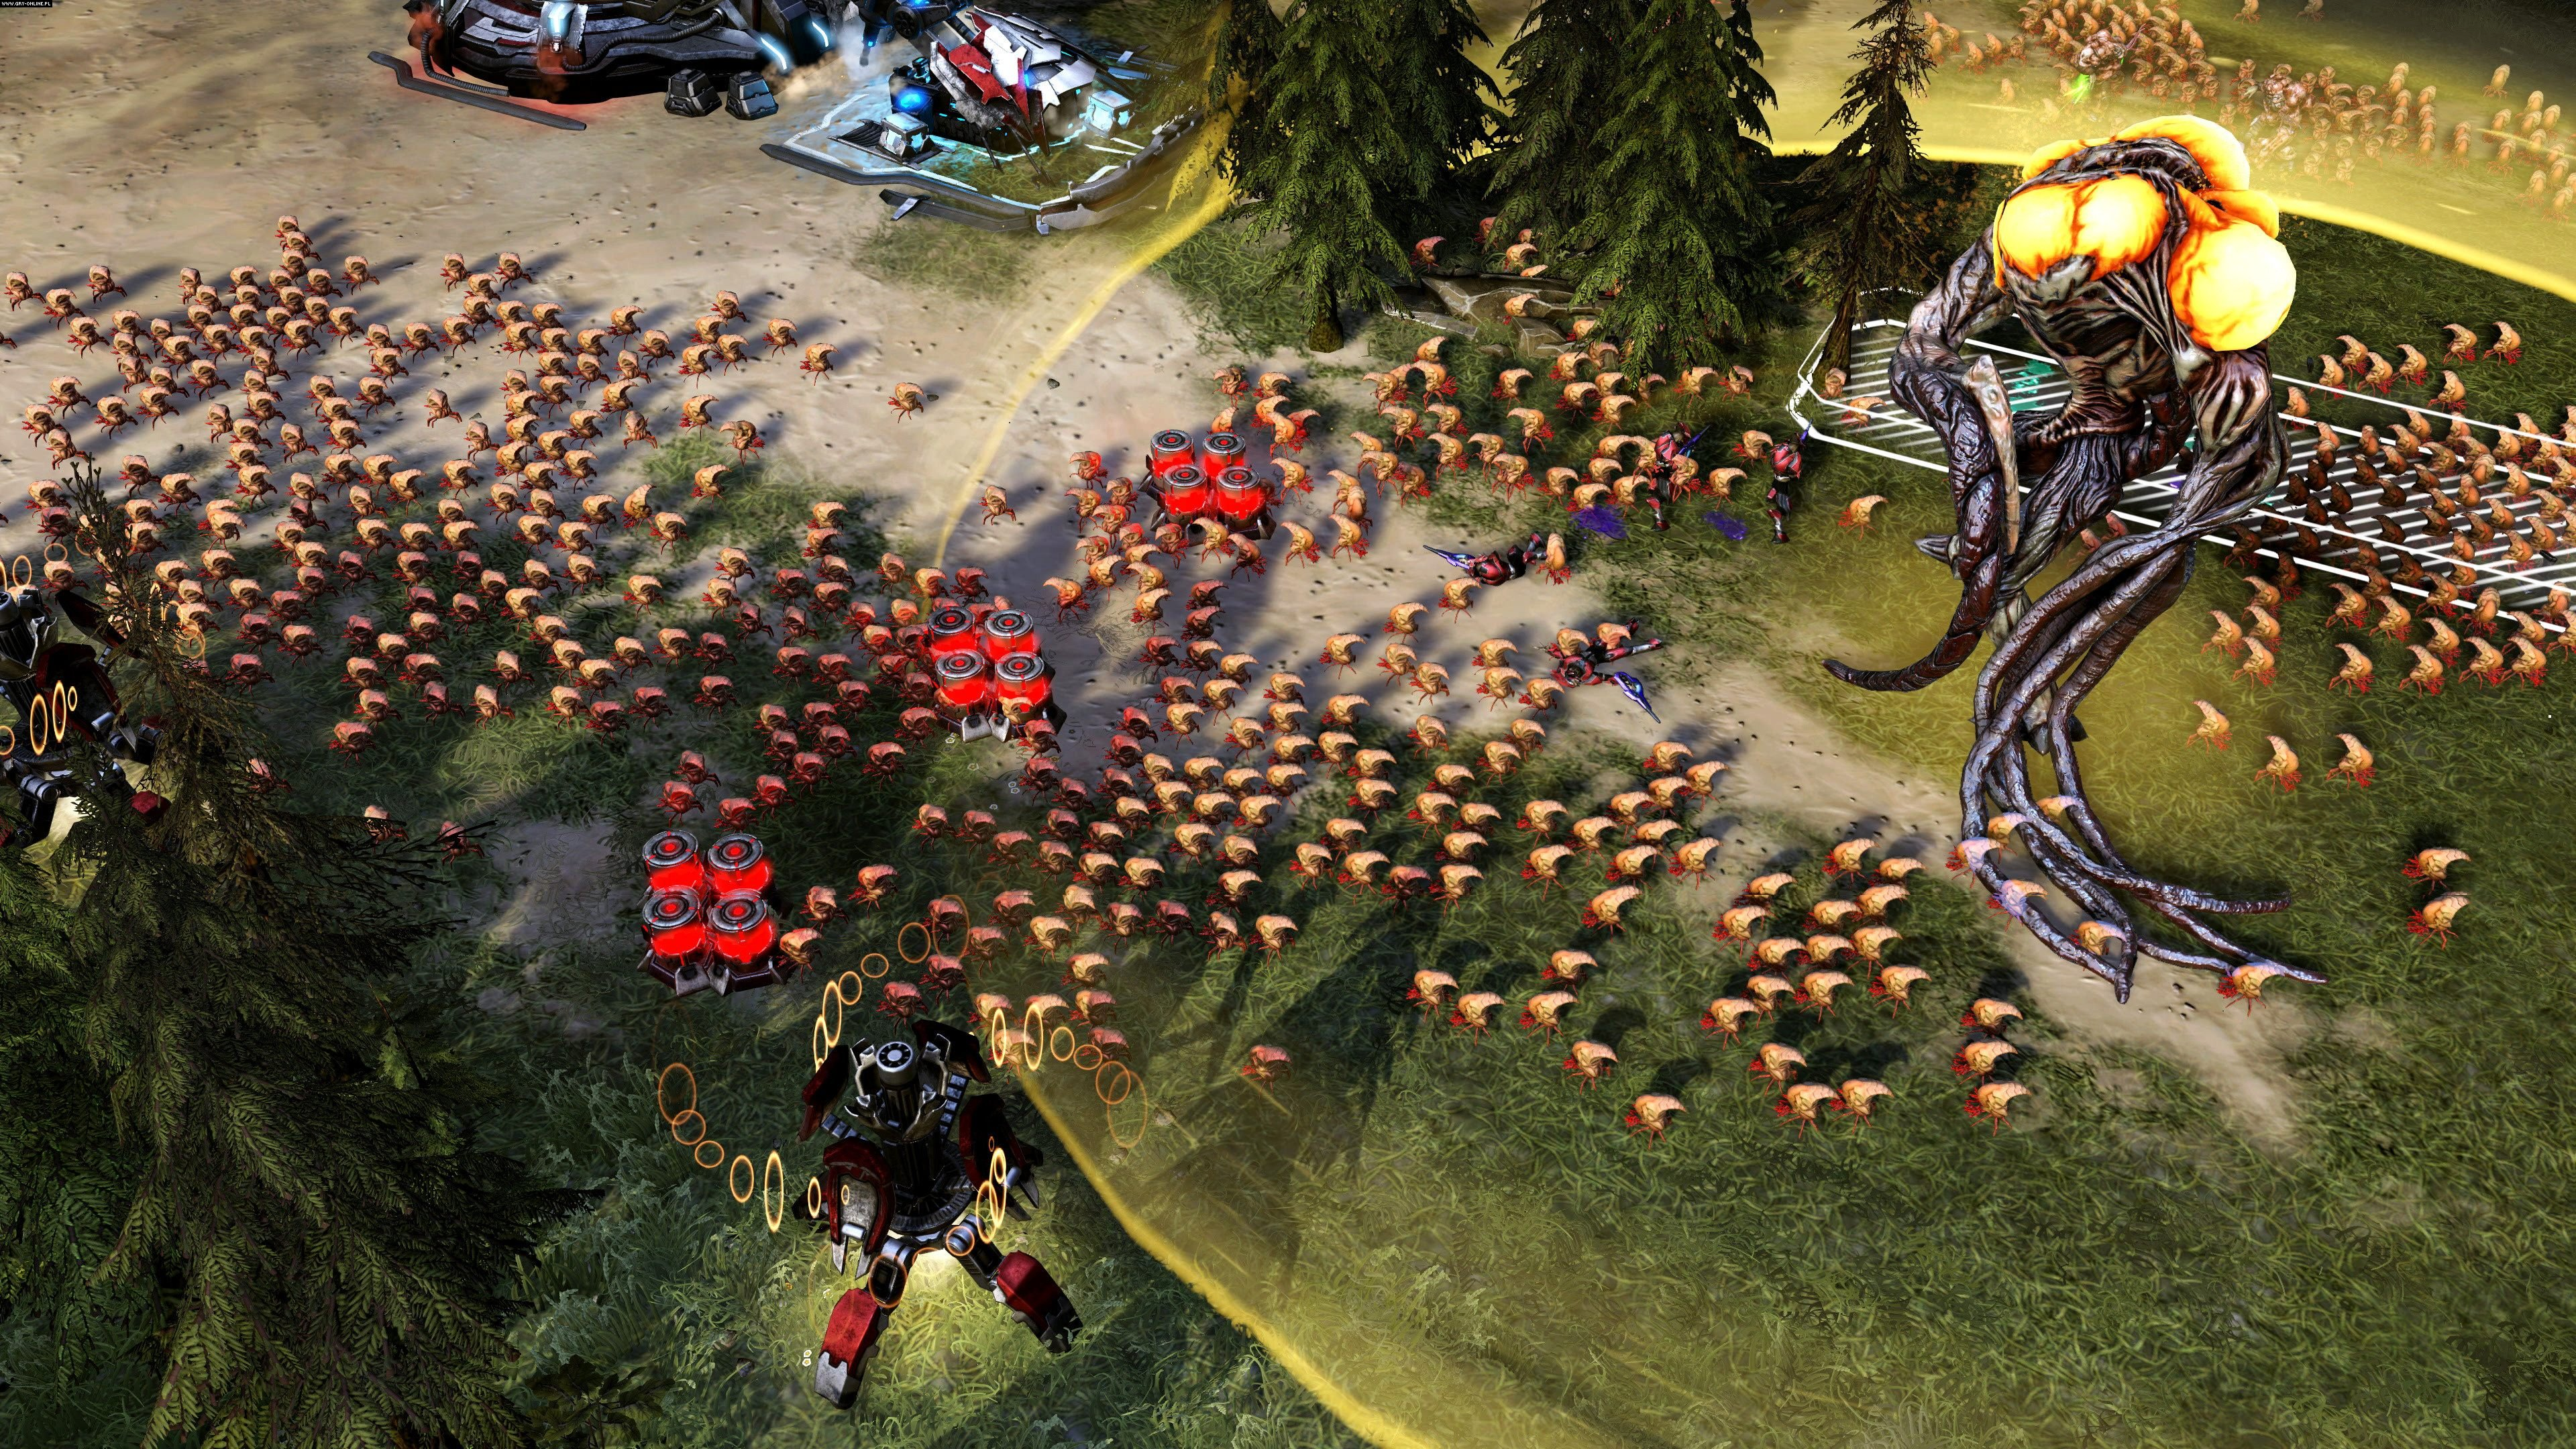 Halo Wars 2 PC, XONE Gry Screen 3/47, Creative Assembly, THQ Nordic / Nordic Games